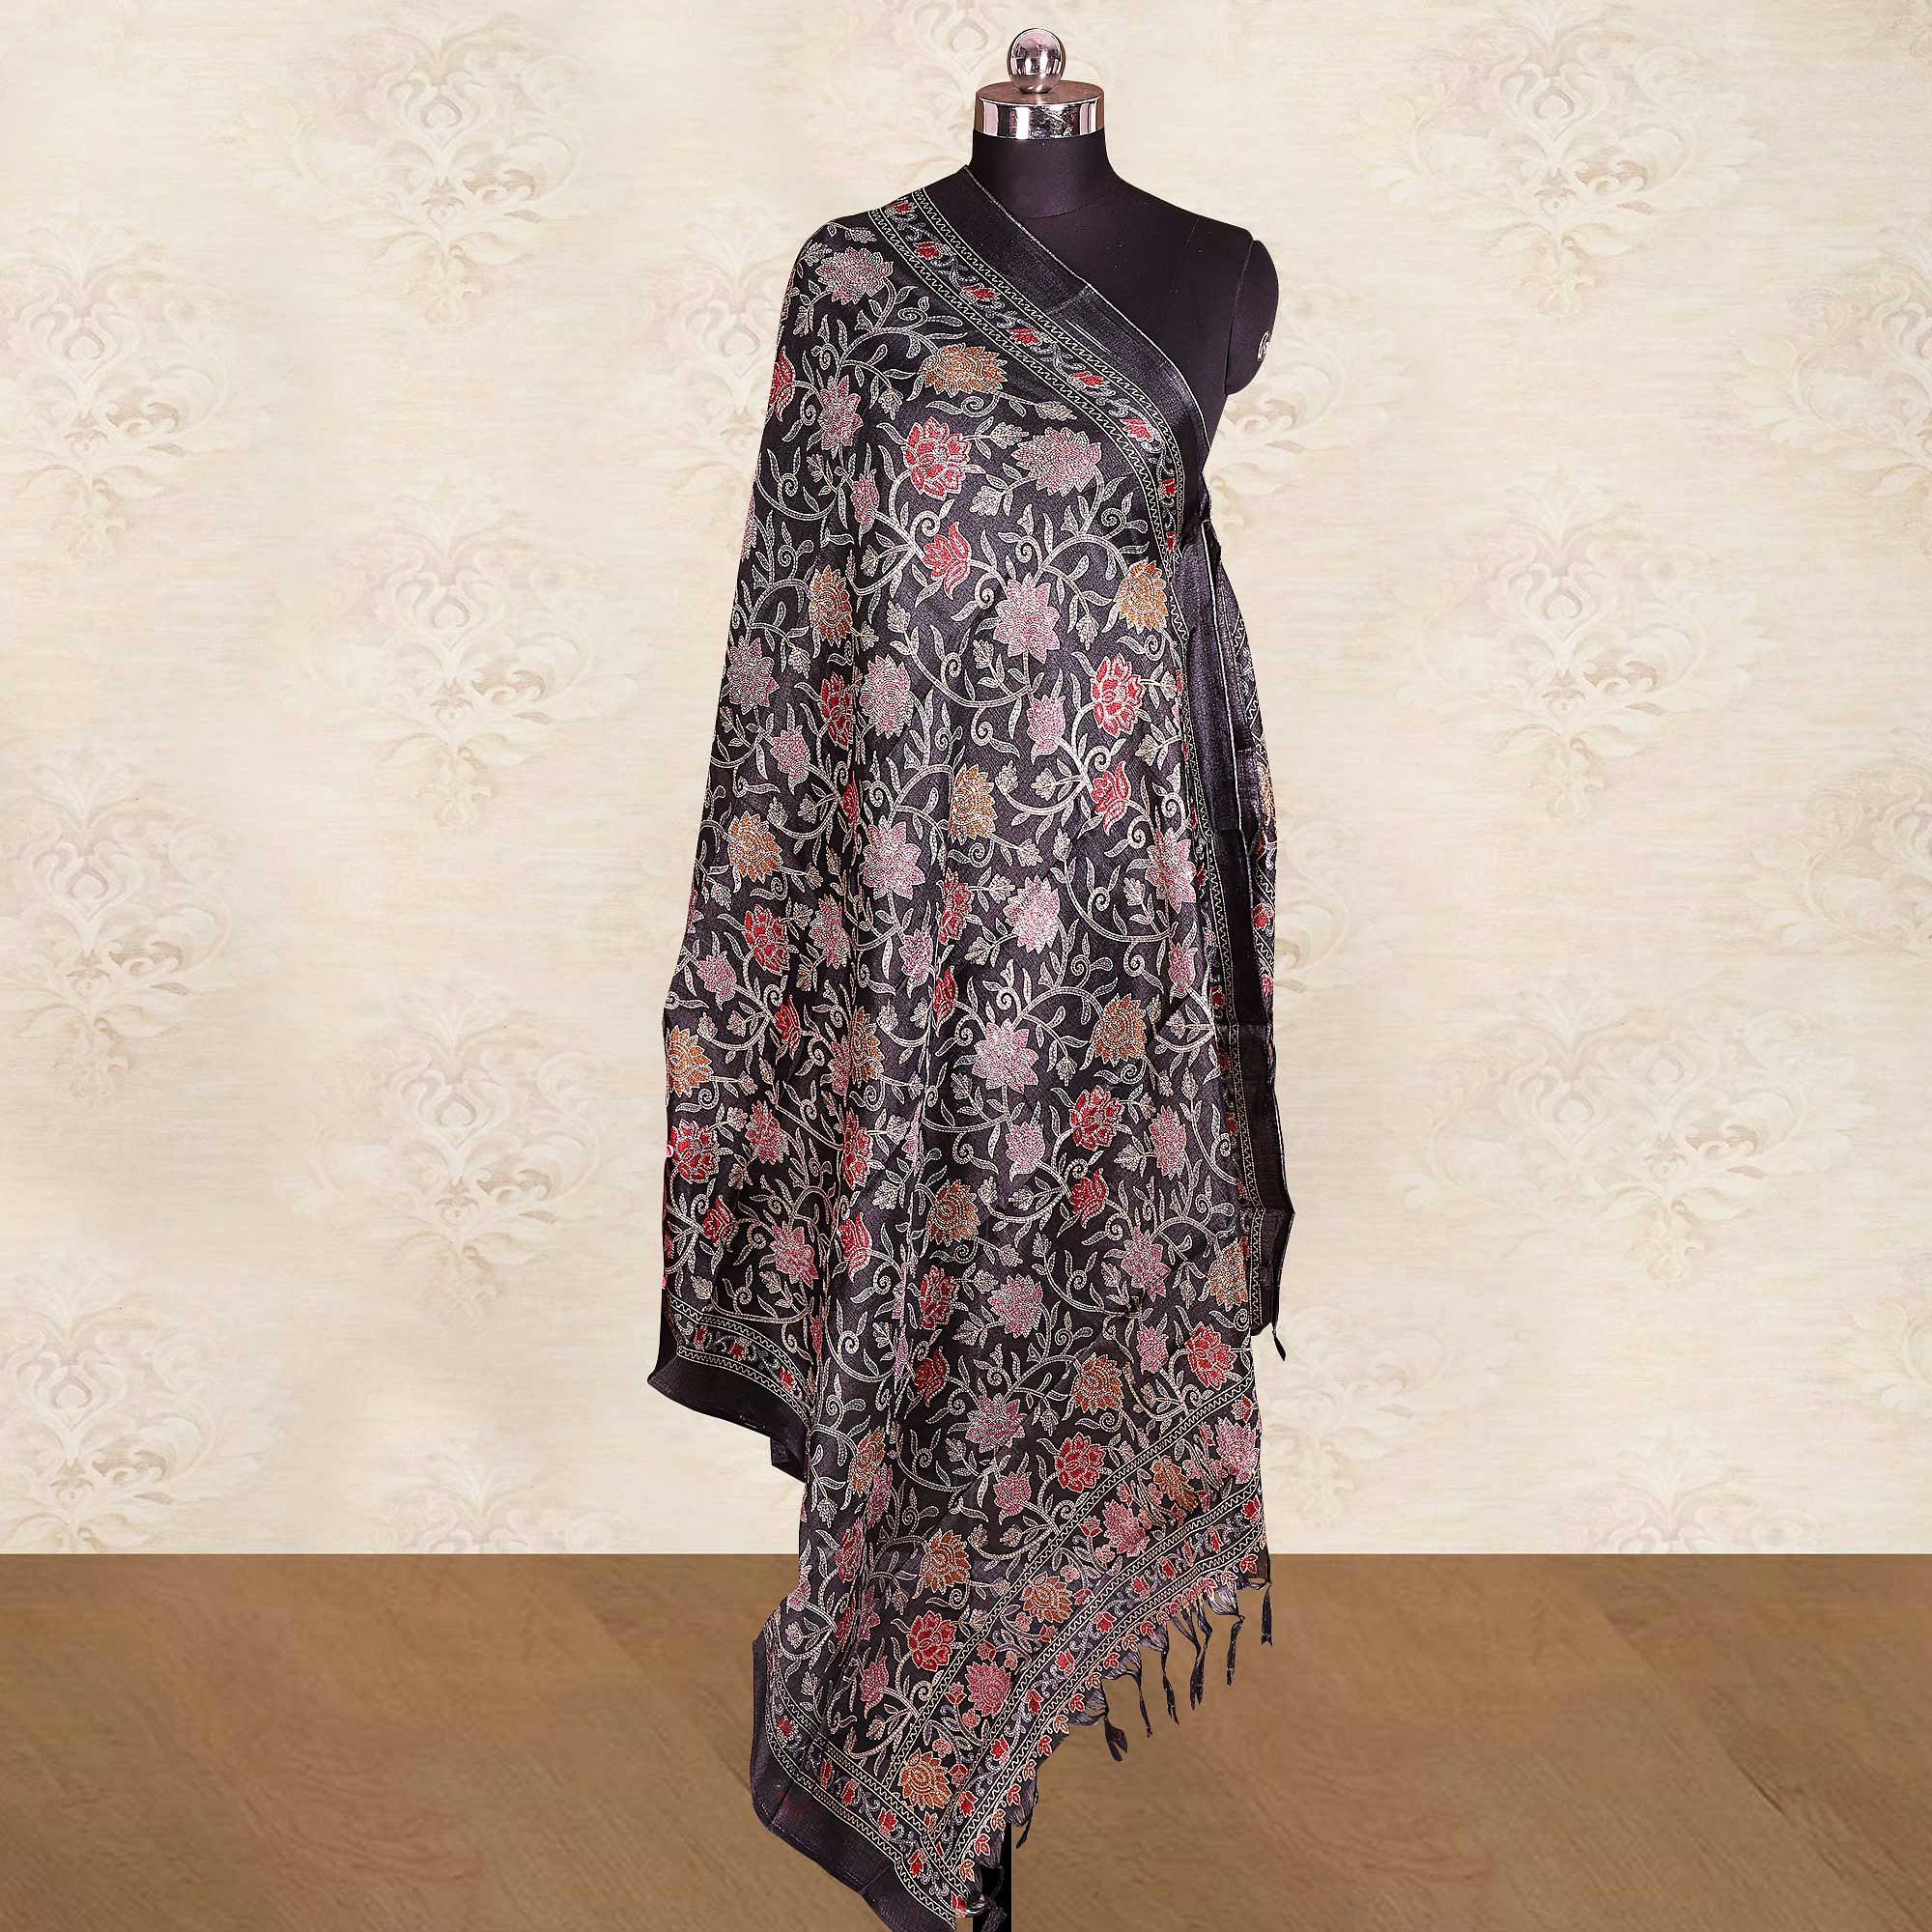 Marvellous Casual Wear Printed Cotton Blend Dupatta With Tassels - Pack of 2